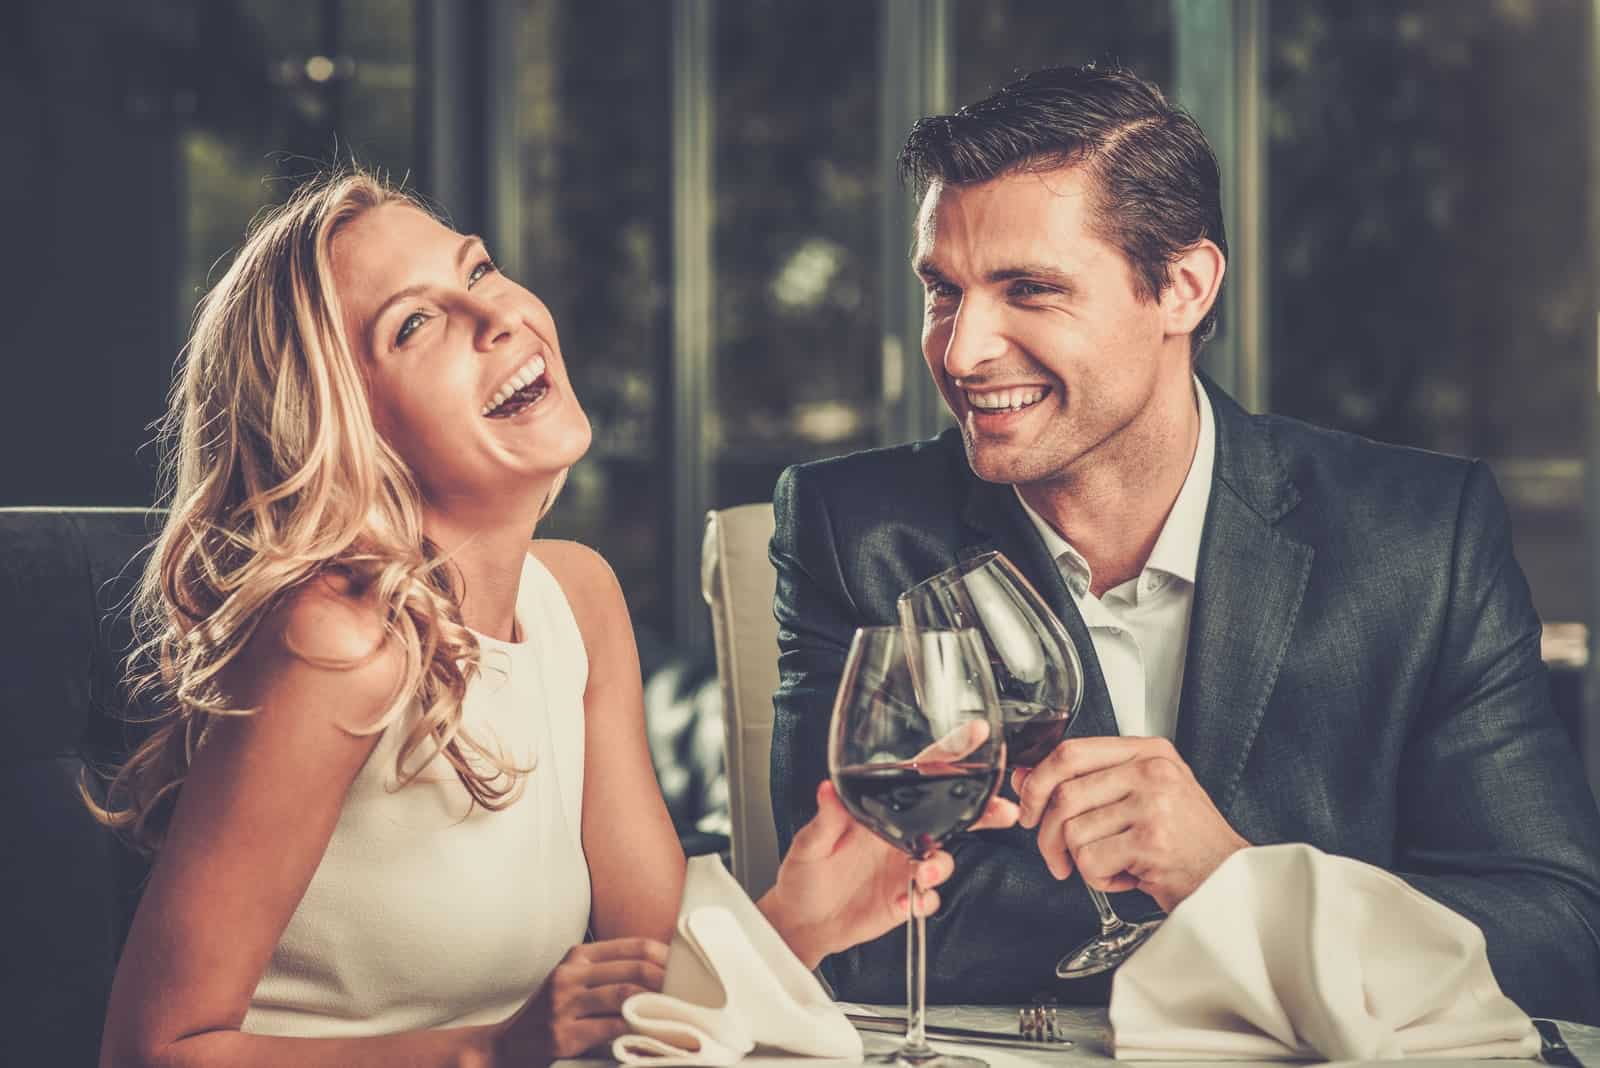 the man and woman at dinner laugh